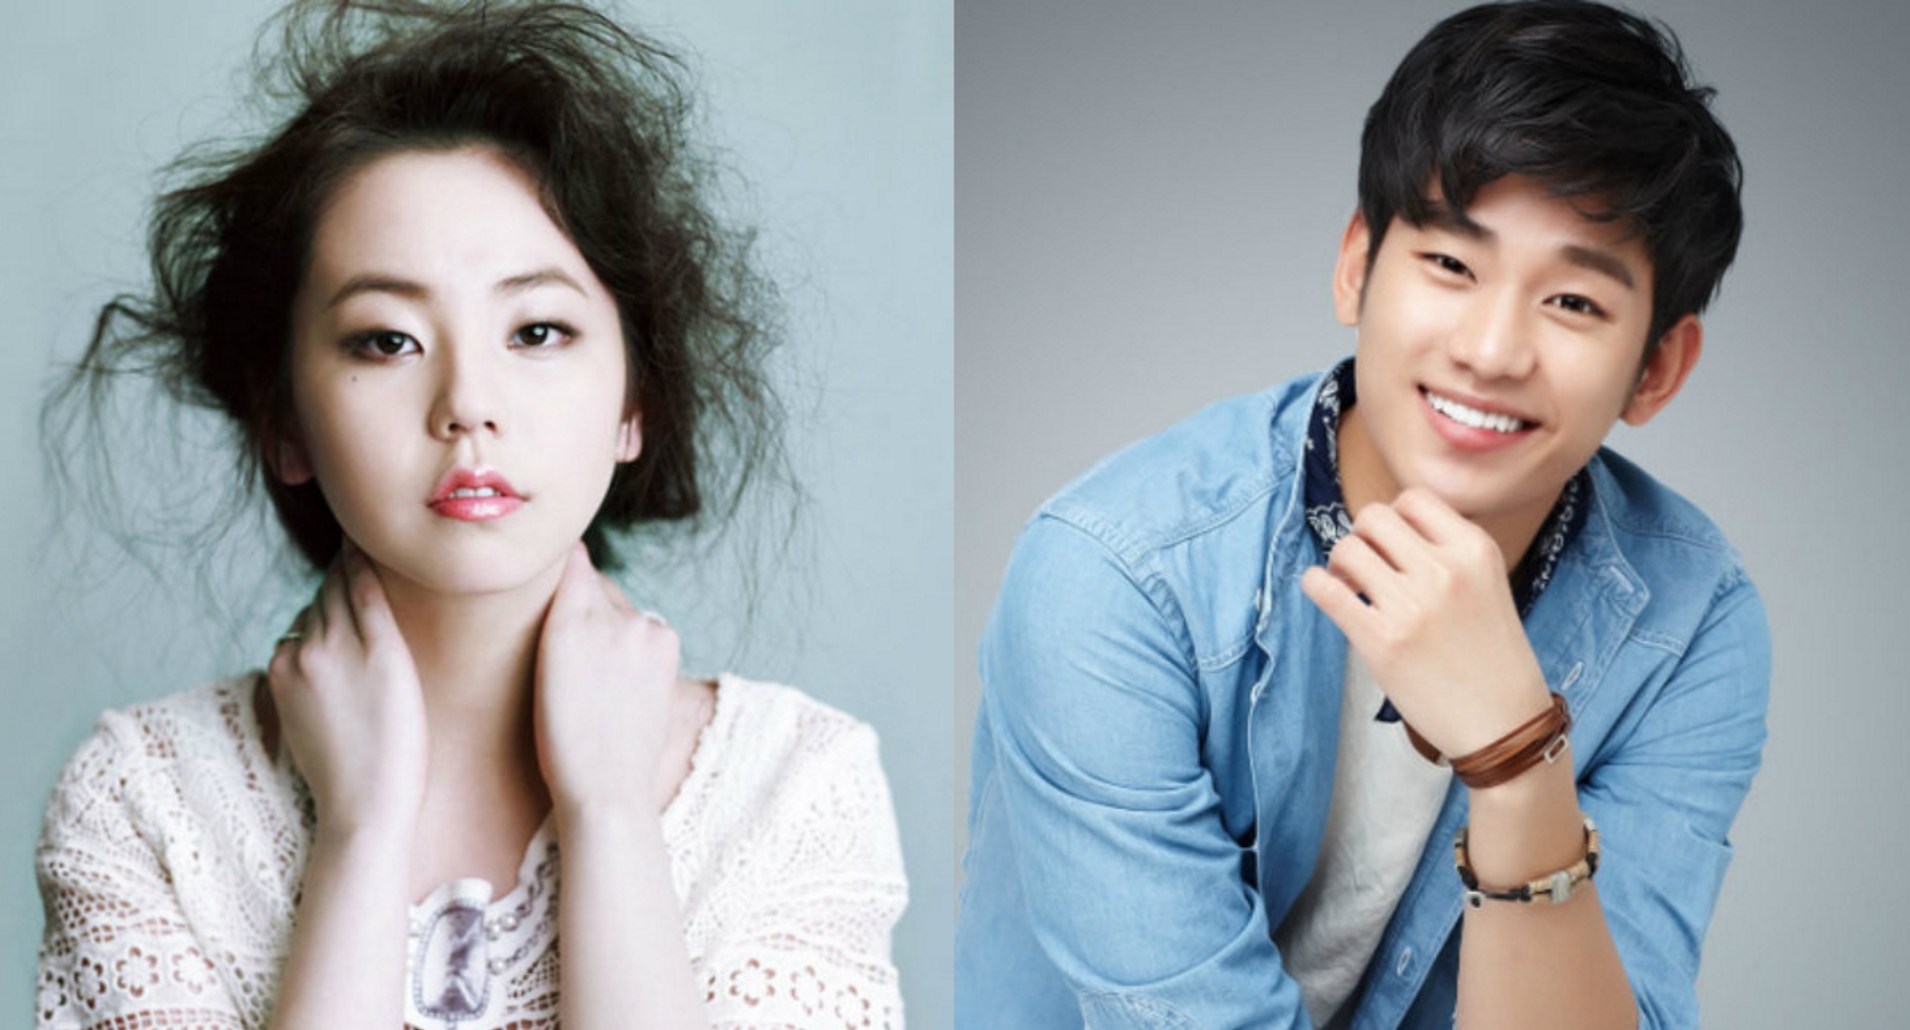 kim soo hyun and sandara park dating who